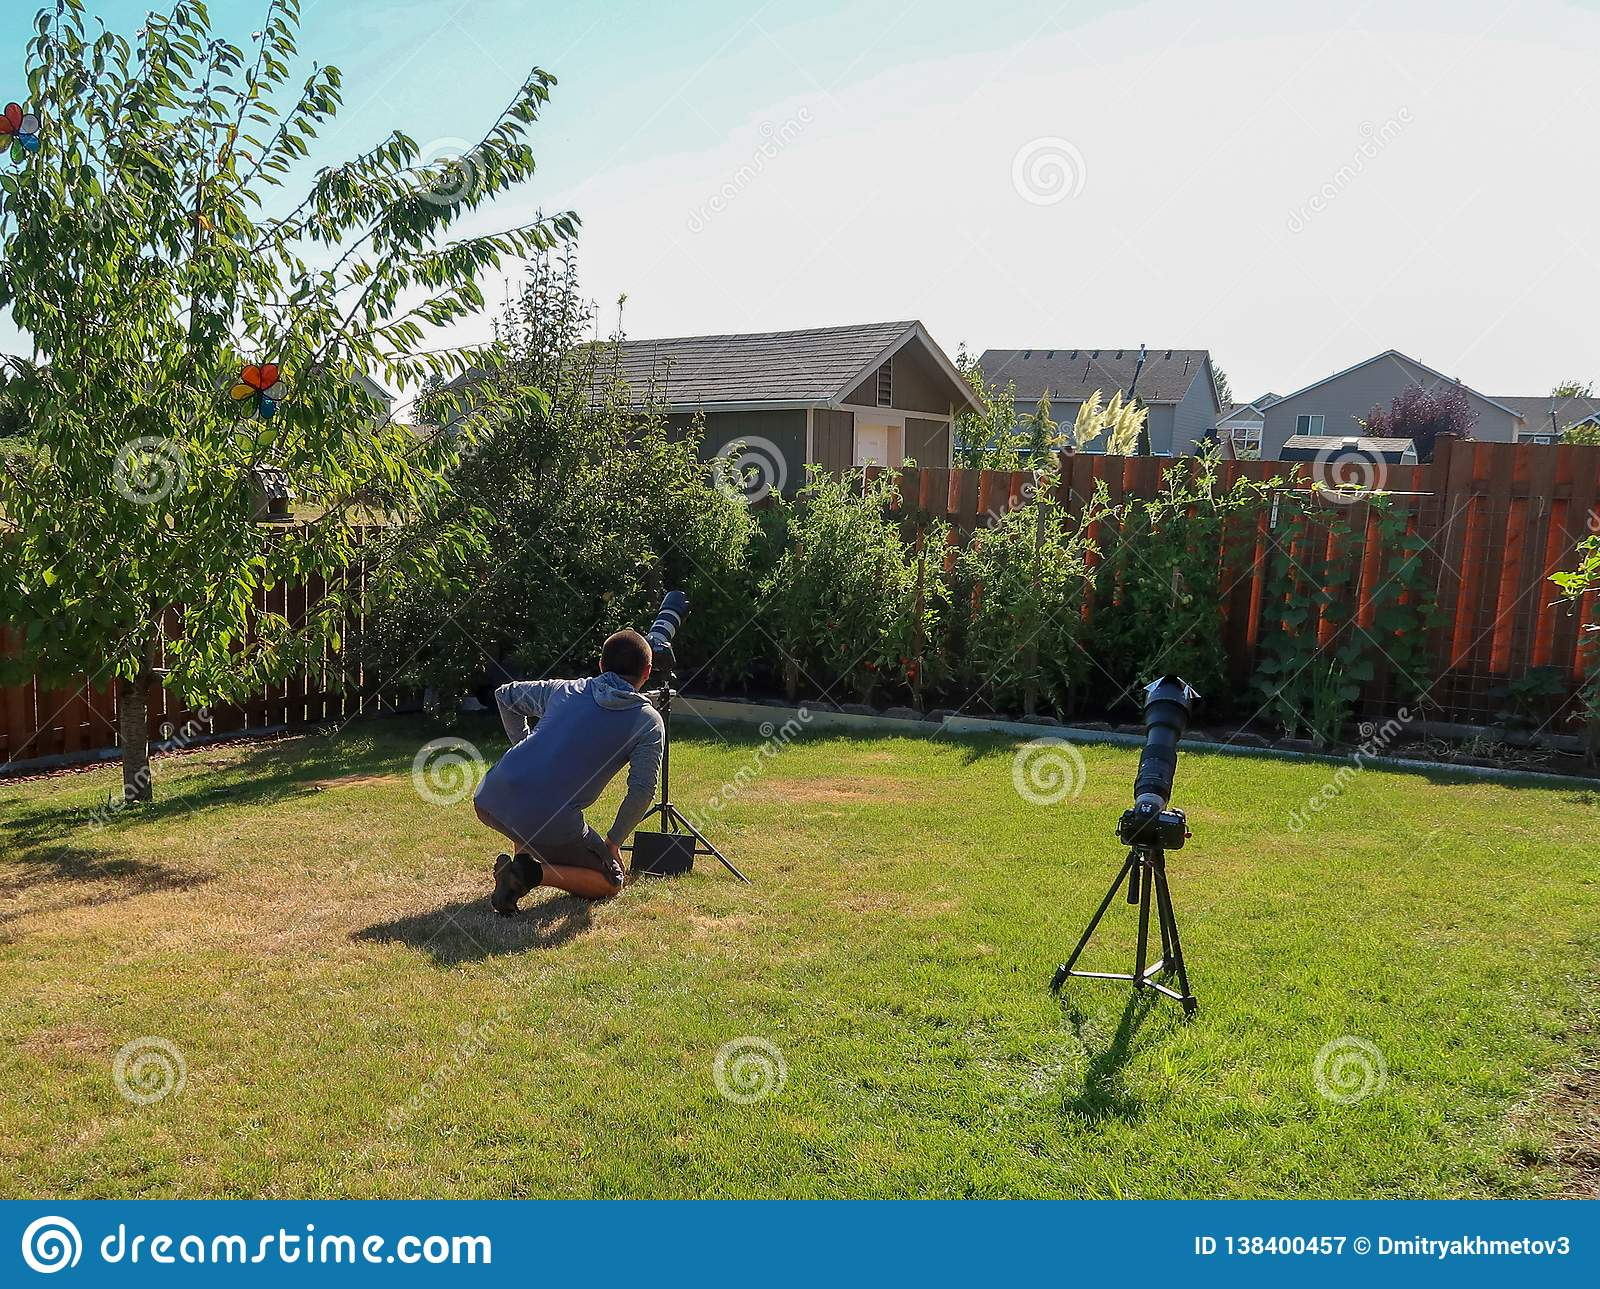 A man taking pictures of a total solar eclipse on a backyard of house